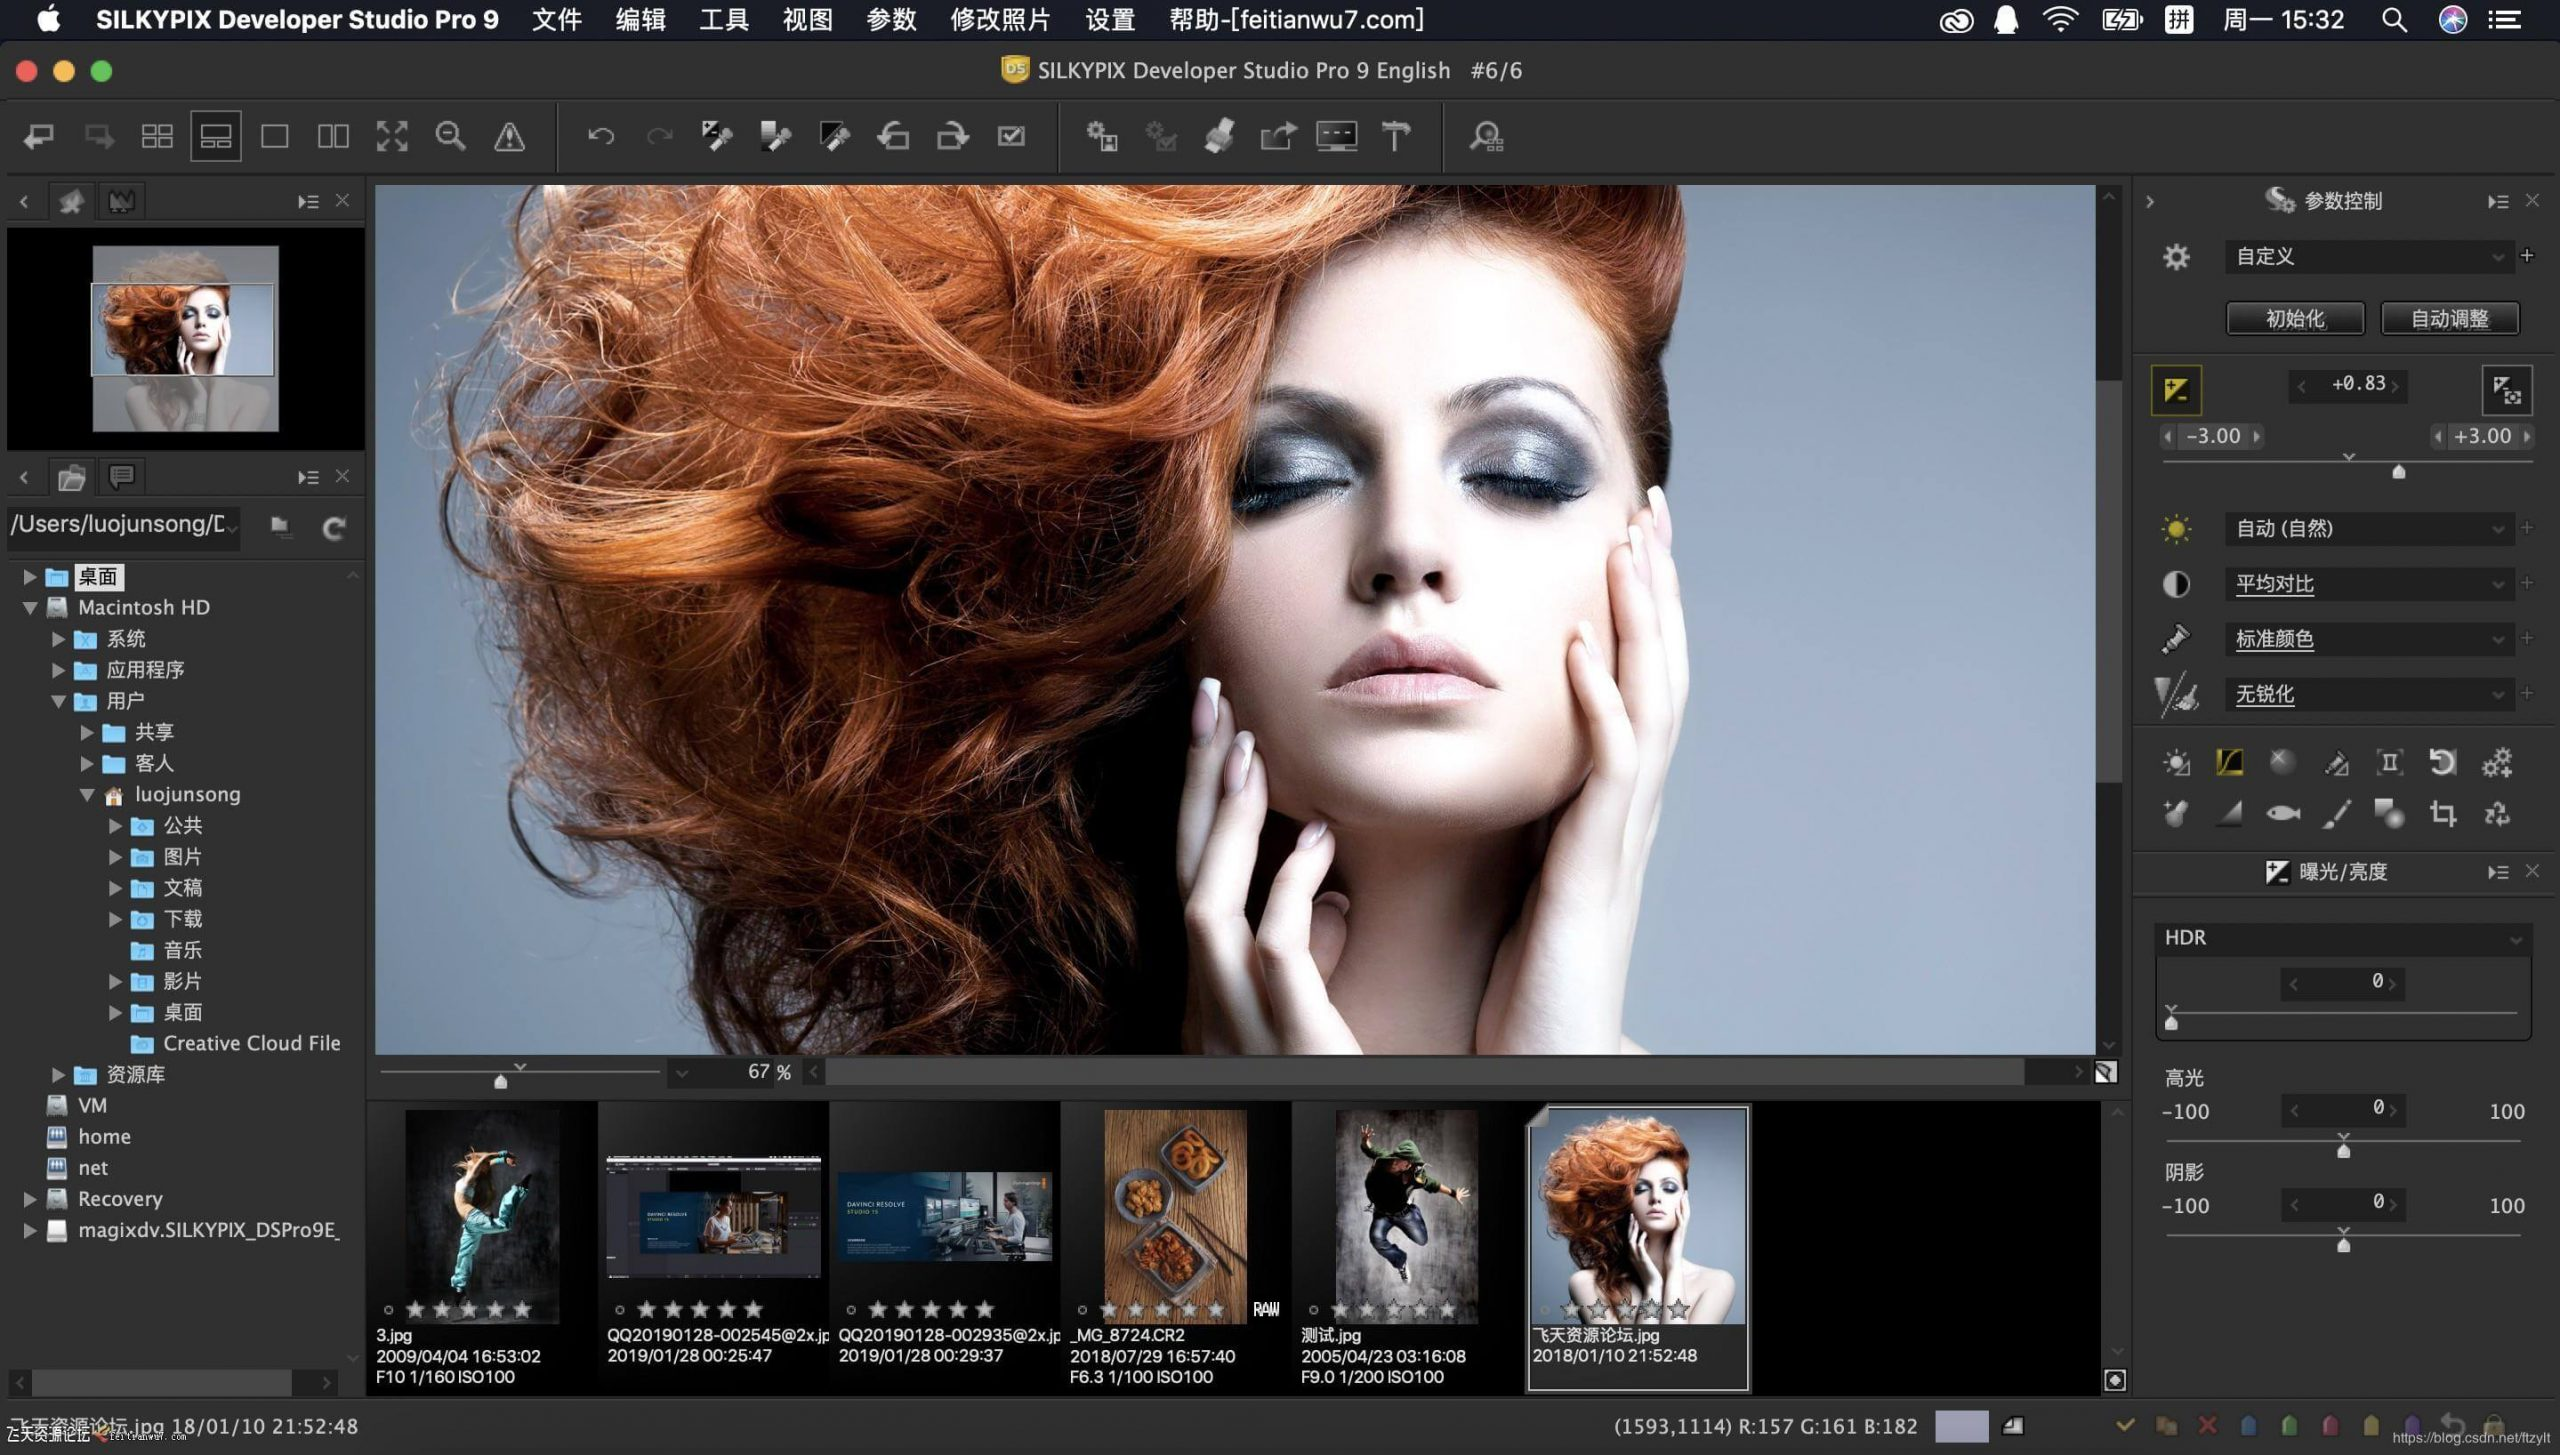 Silkypix Developer Studio Pro Crack Full Version